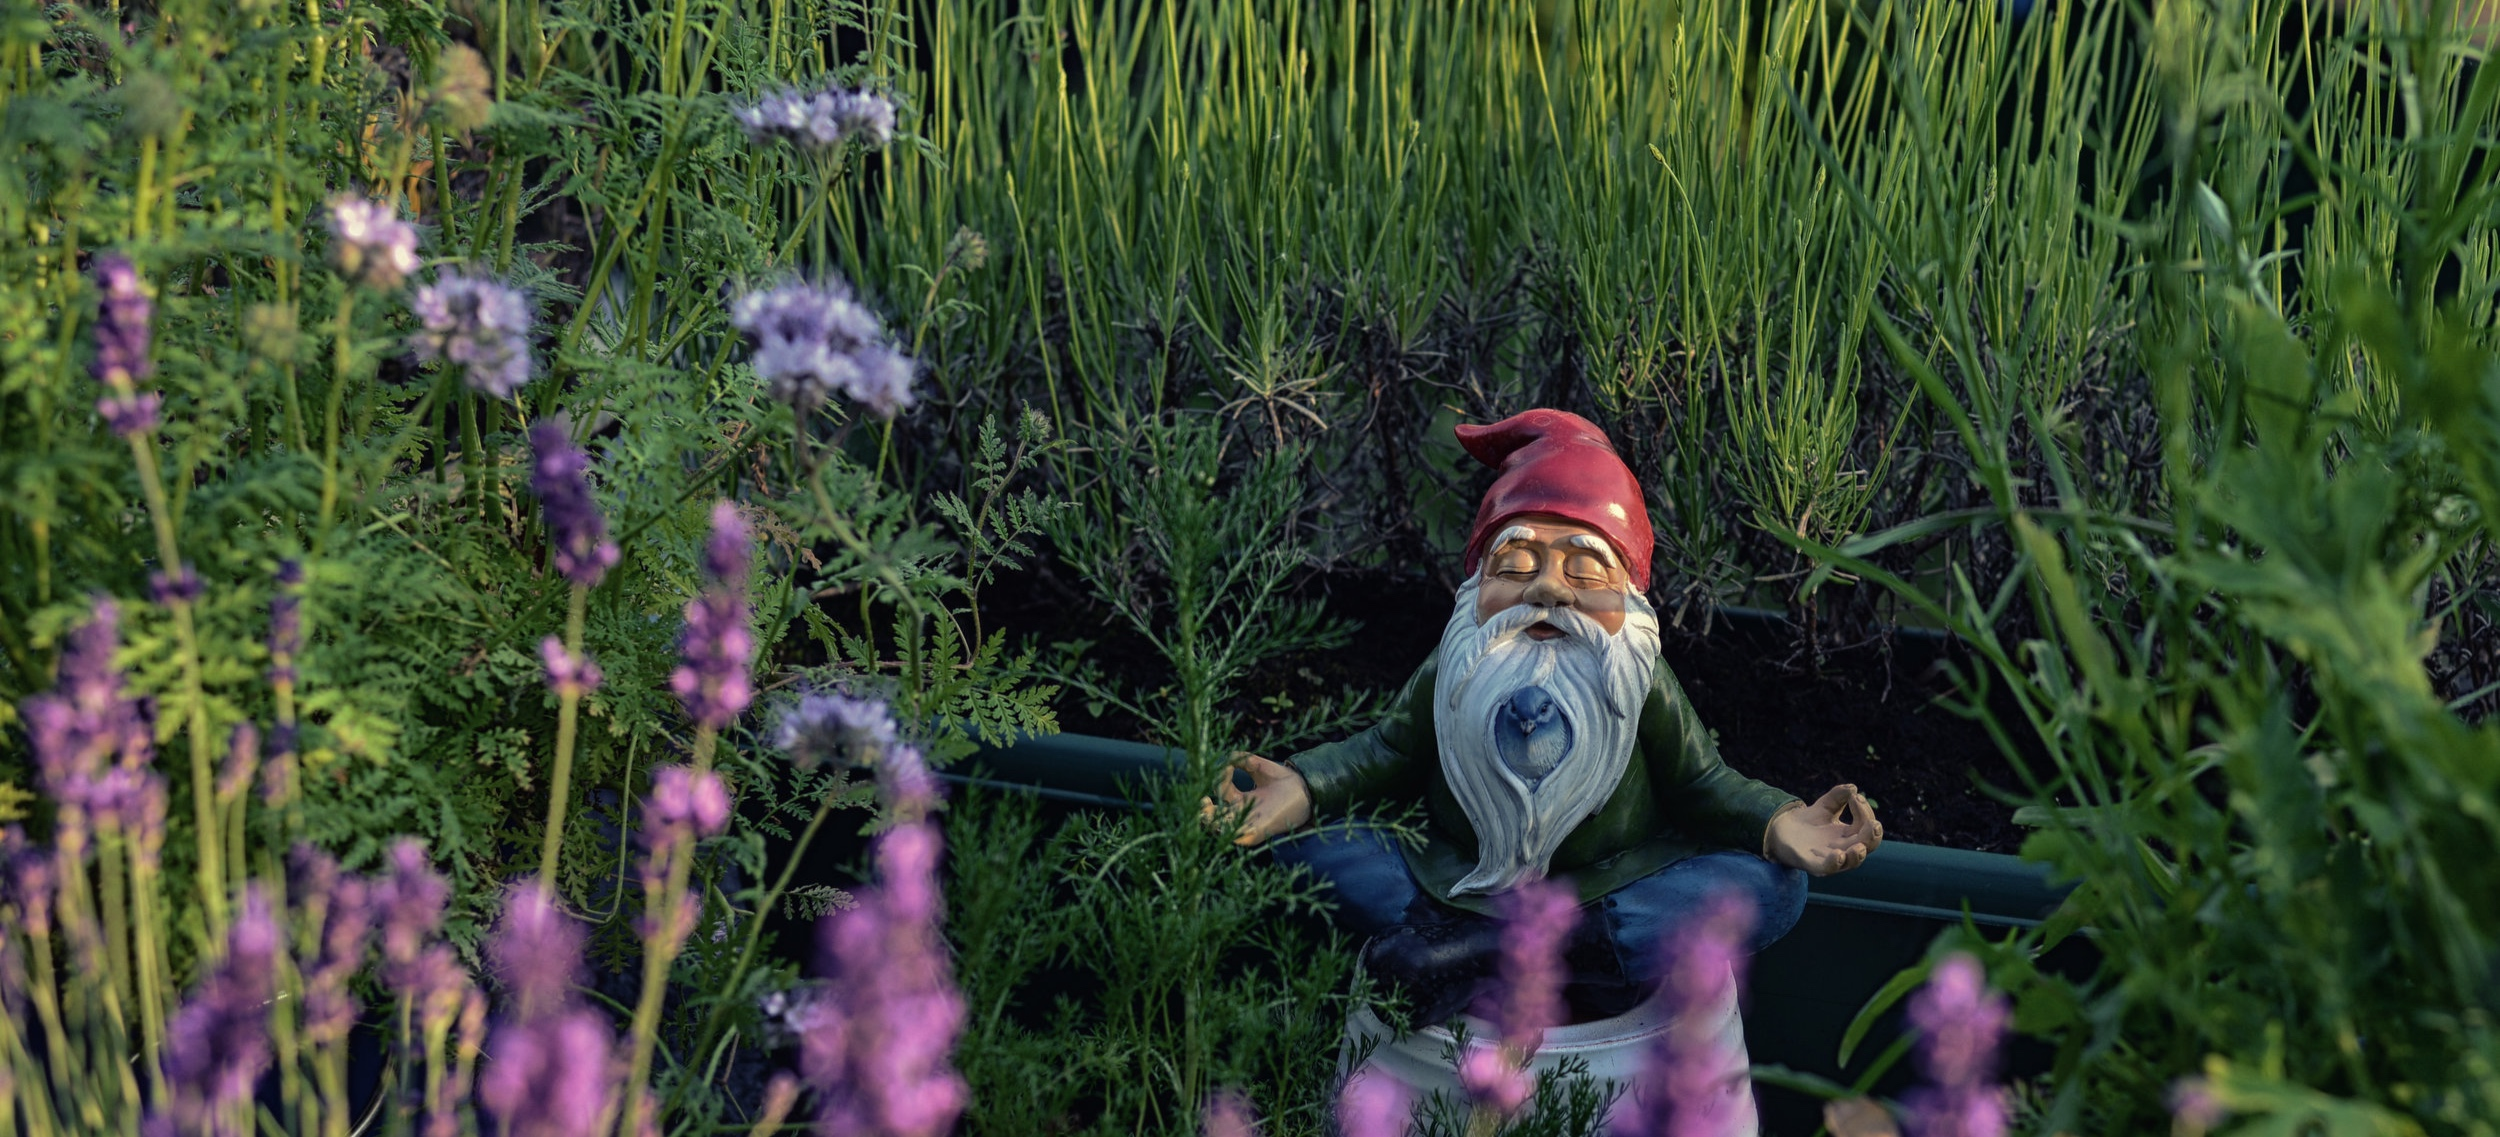 Meditation is seriously helpful, and will bring a lightness of being. Like the gnome-yogi.